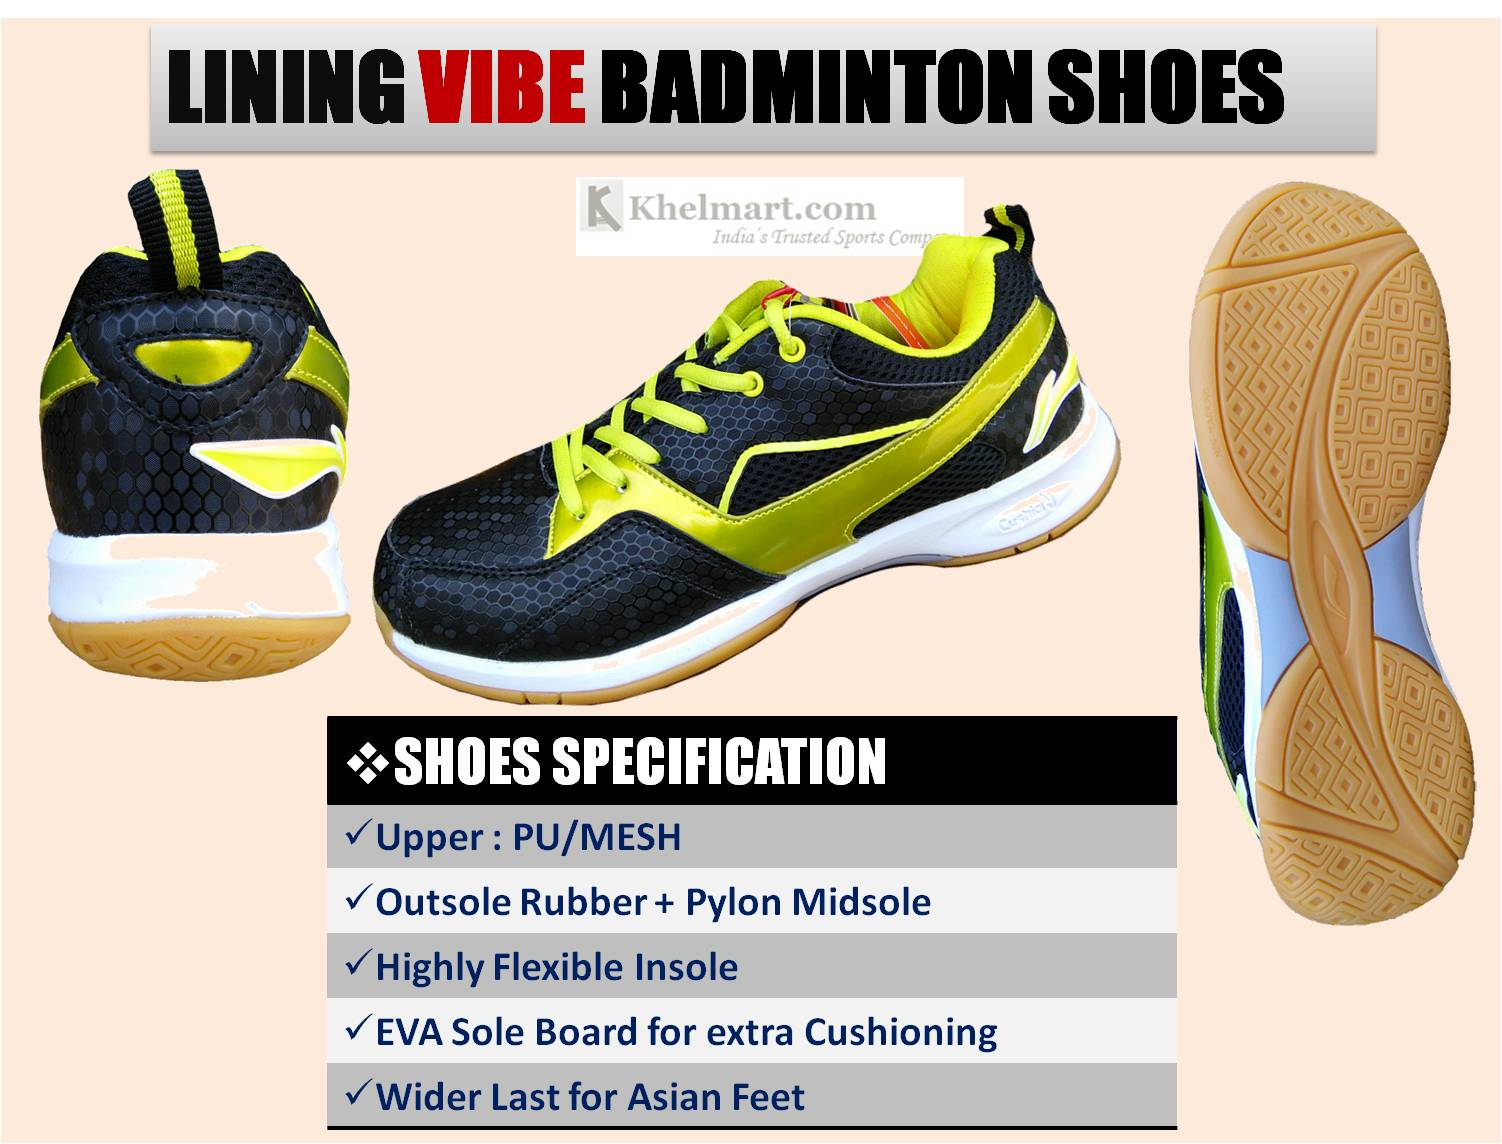 LINING_VIBE_BADMINTON_SHOES